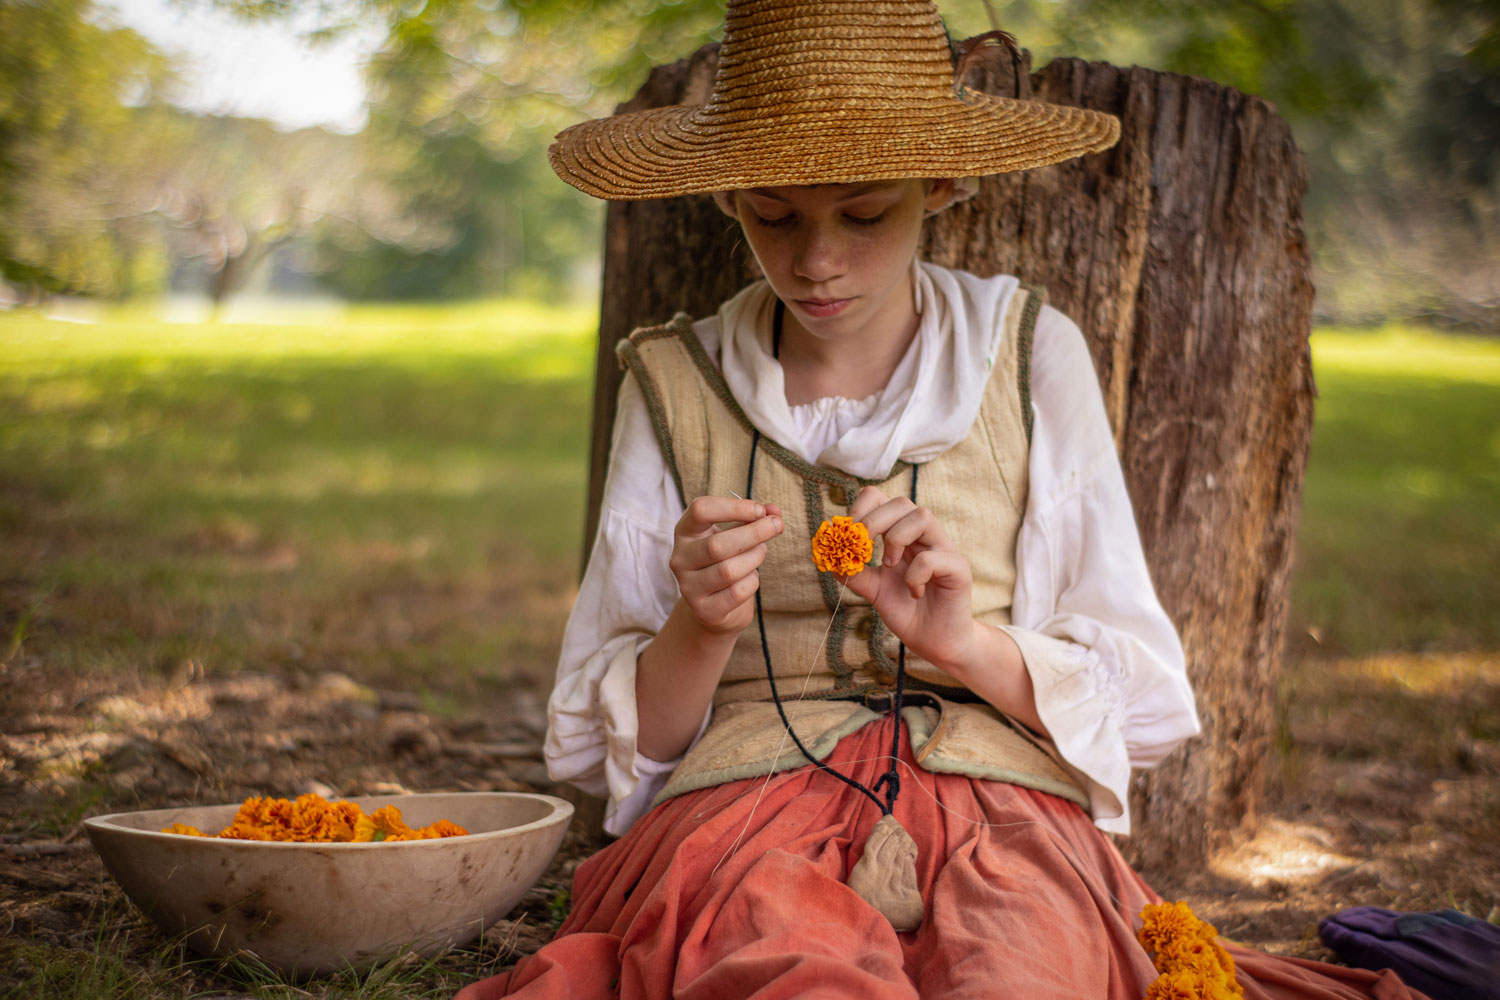 A homeschool program offers students the chance to interpret to the public and learn historical skills